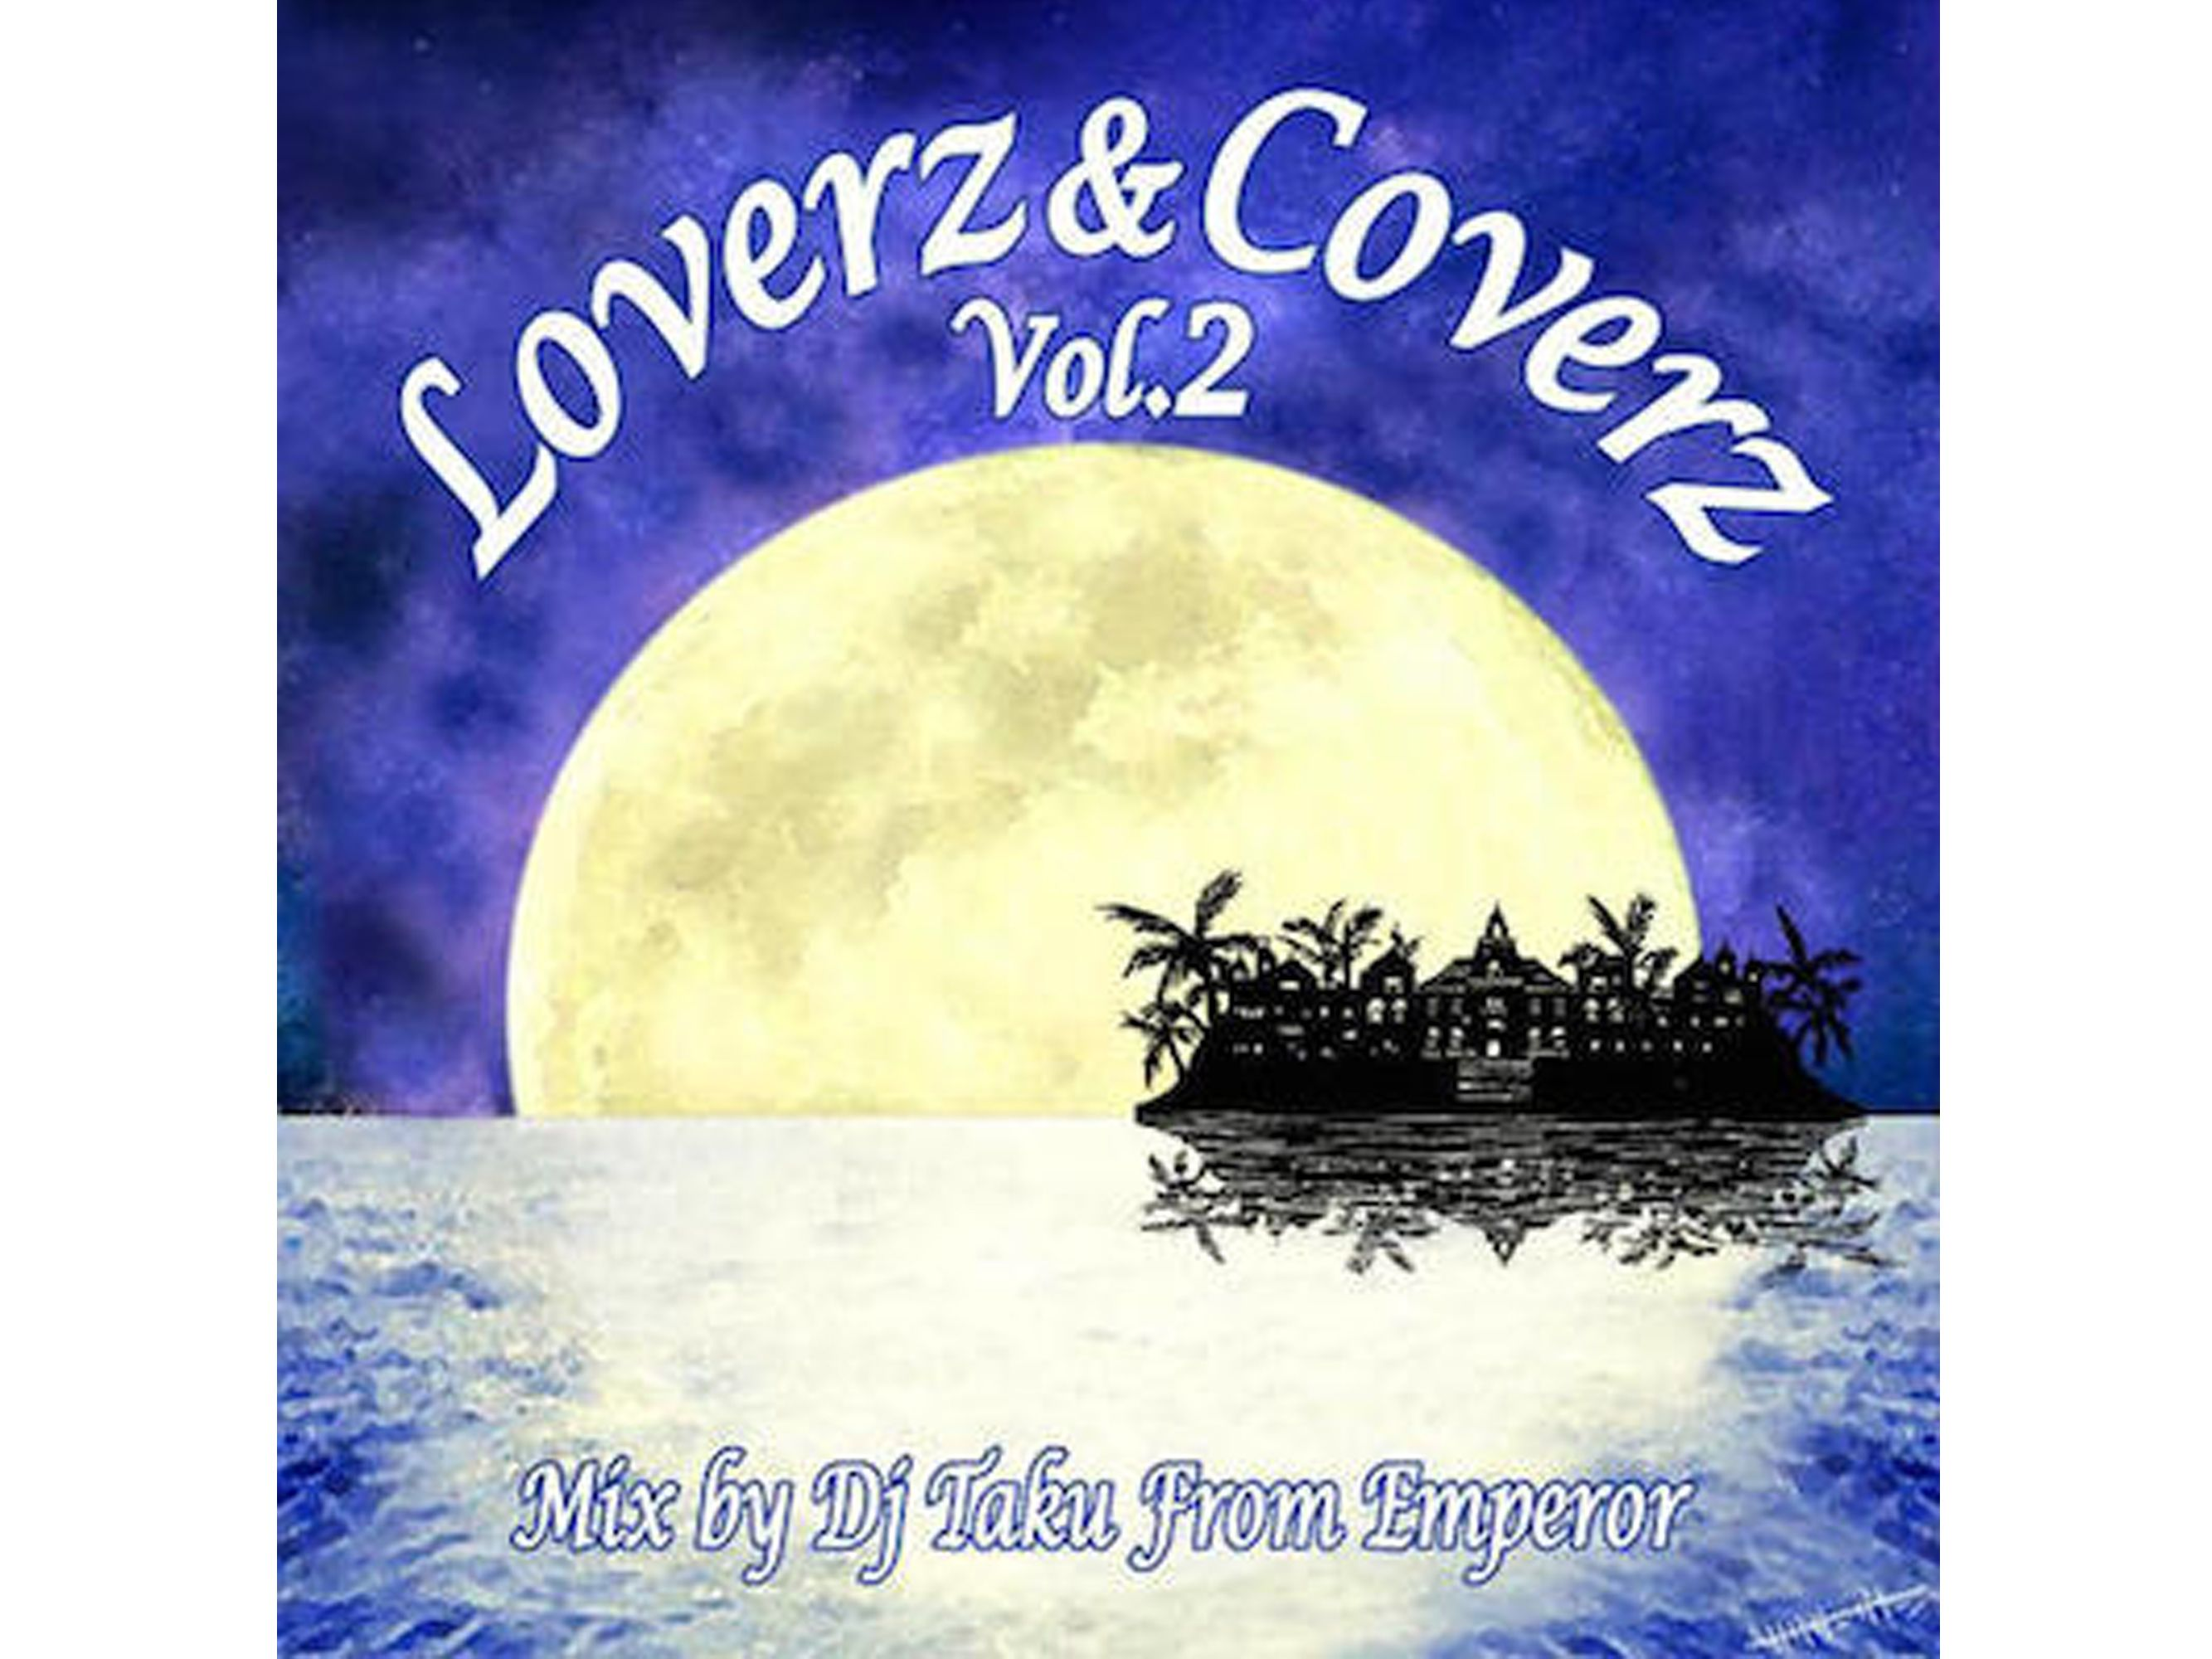 Loverz & Coverz Vol.2 - DJ TAKU from EMPEROR